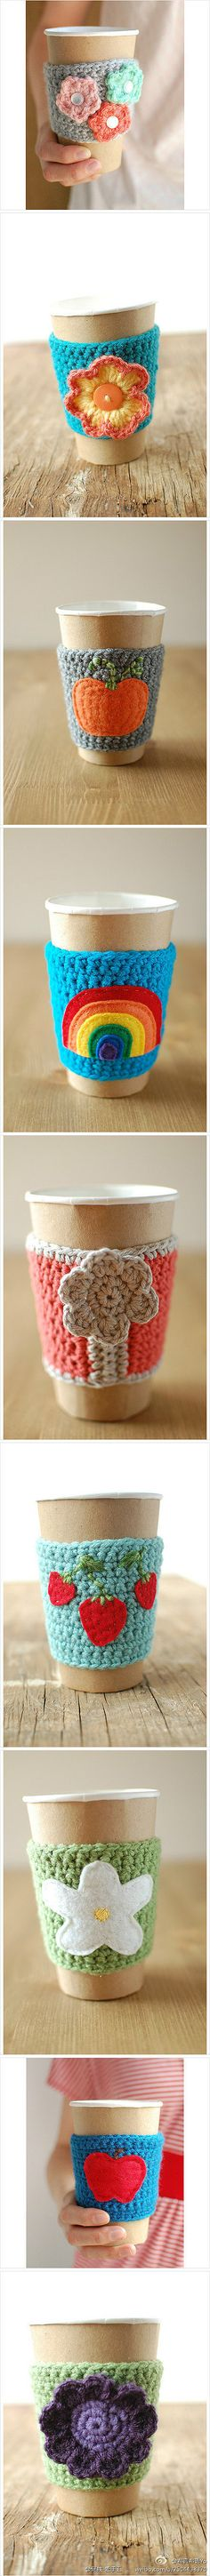 love these crocheted cup cozies...